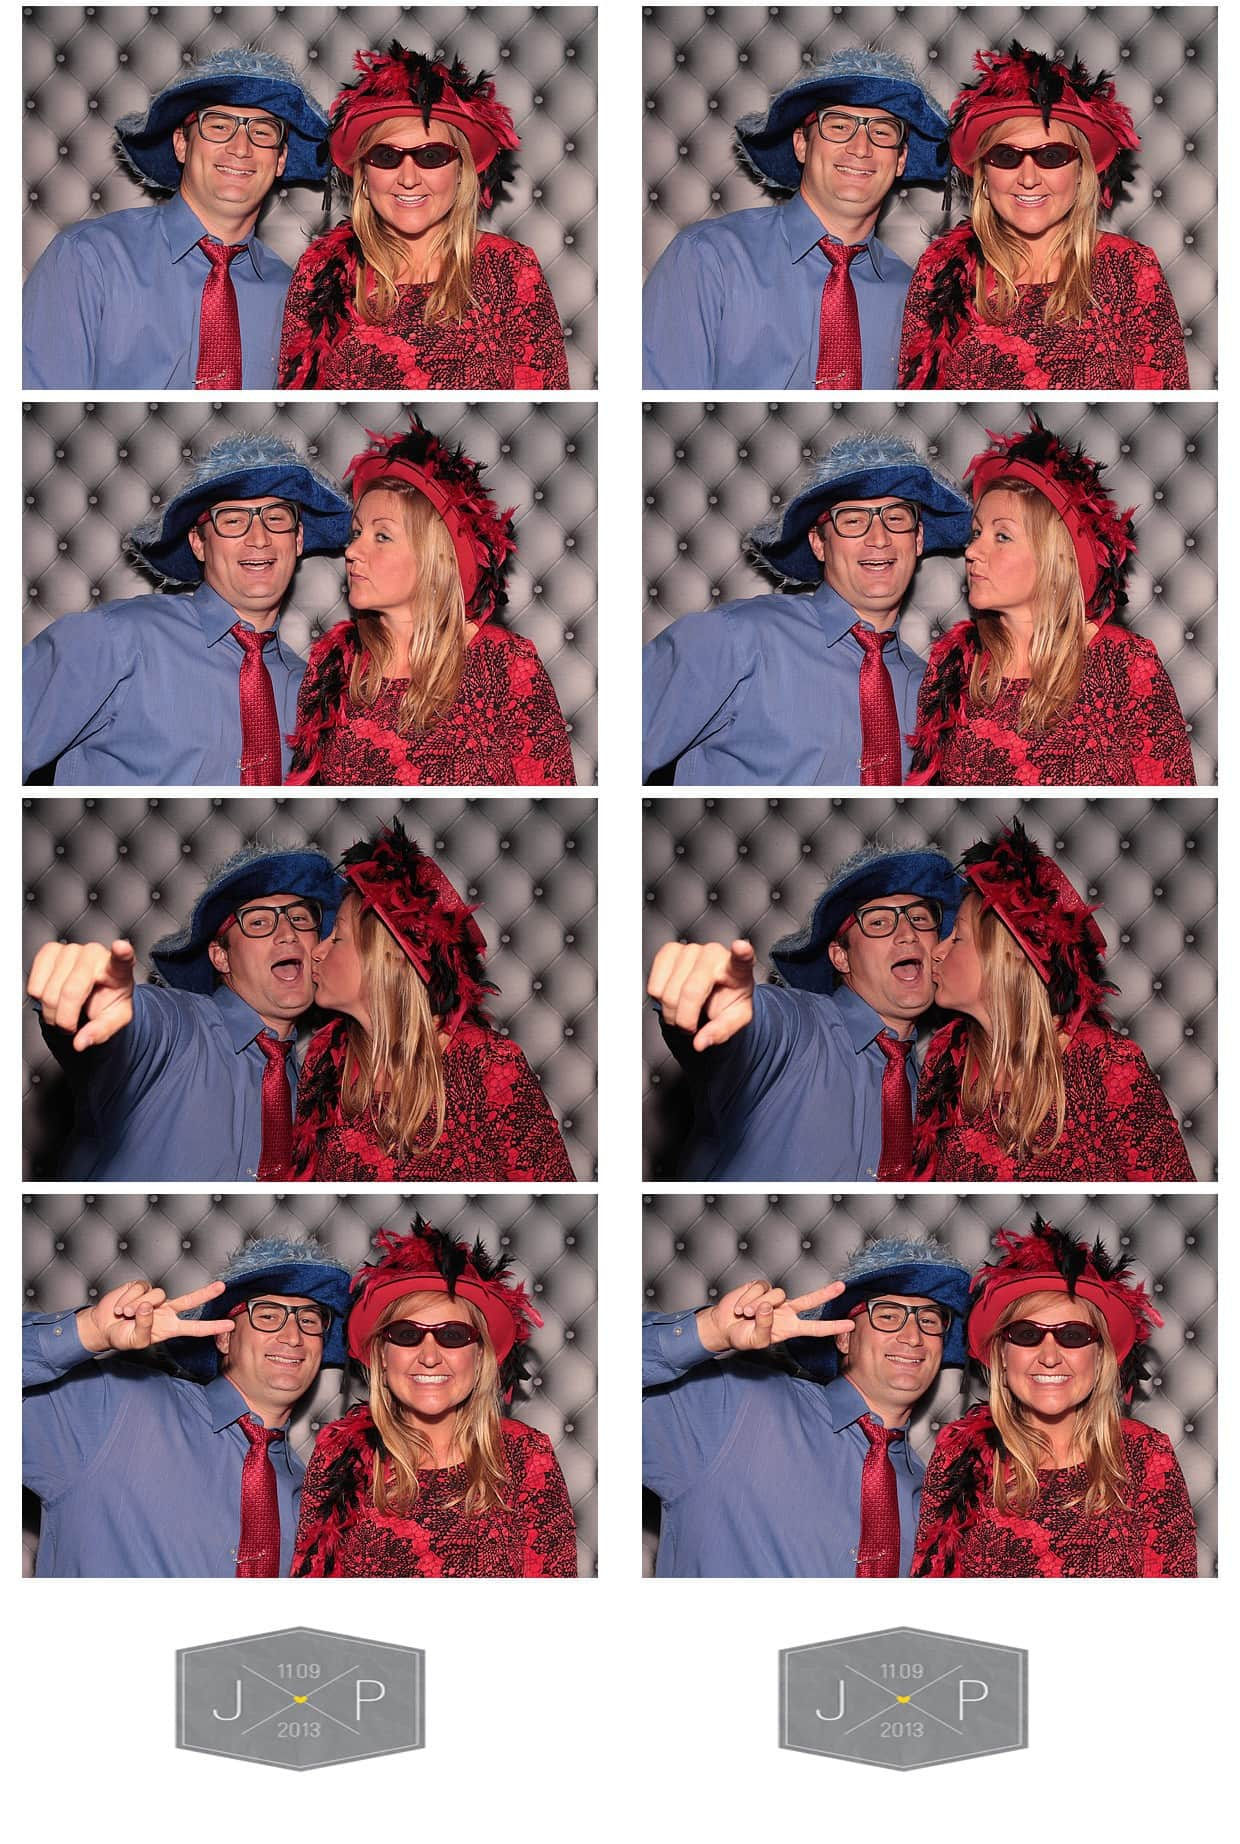 Photobooth-Rental-Wedding-W Hotel-No. 1-Austin-Memories-Awesome-Fun-Reception